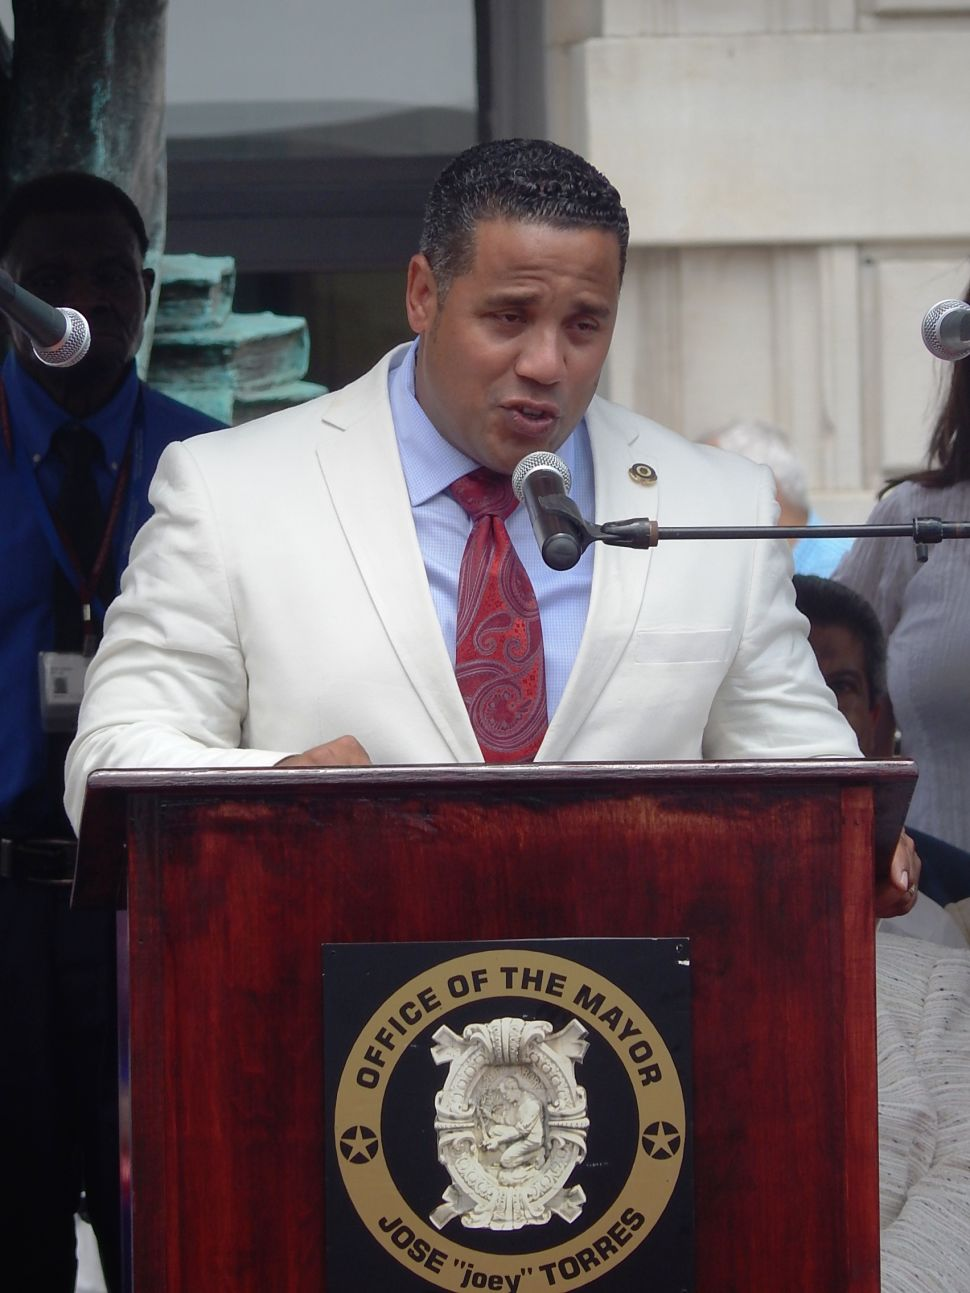 With swearing-in, Mendez arrives on the citywide stage